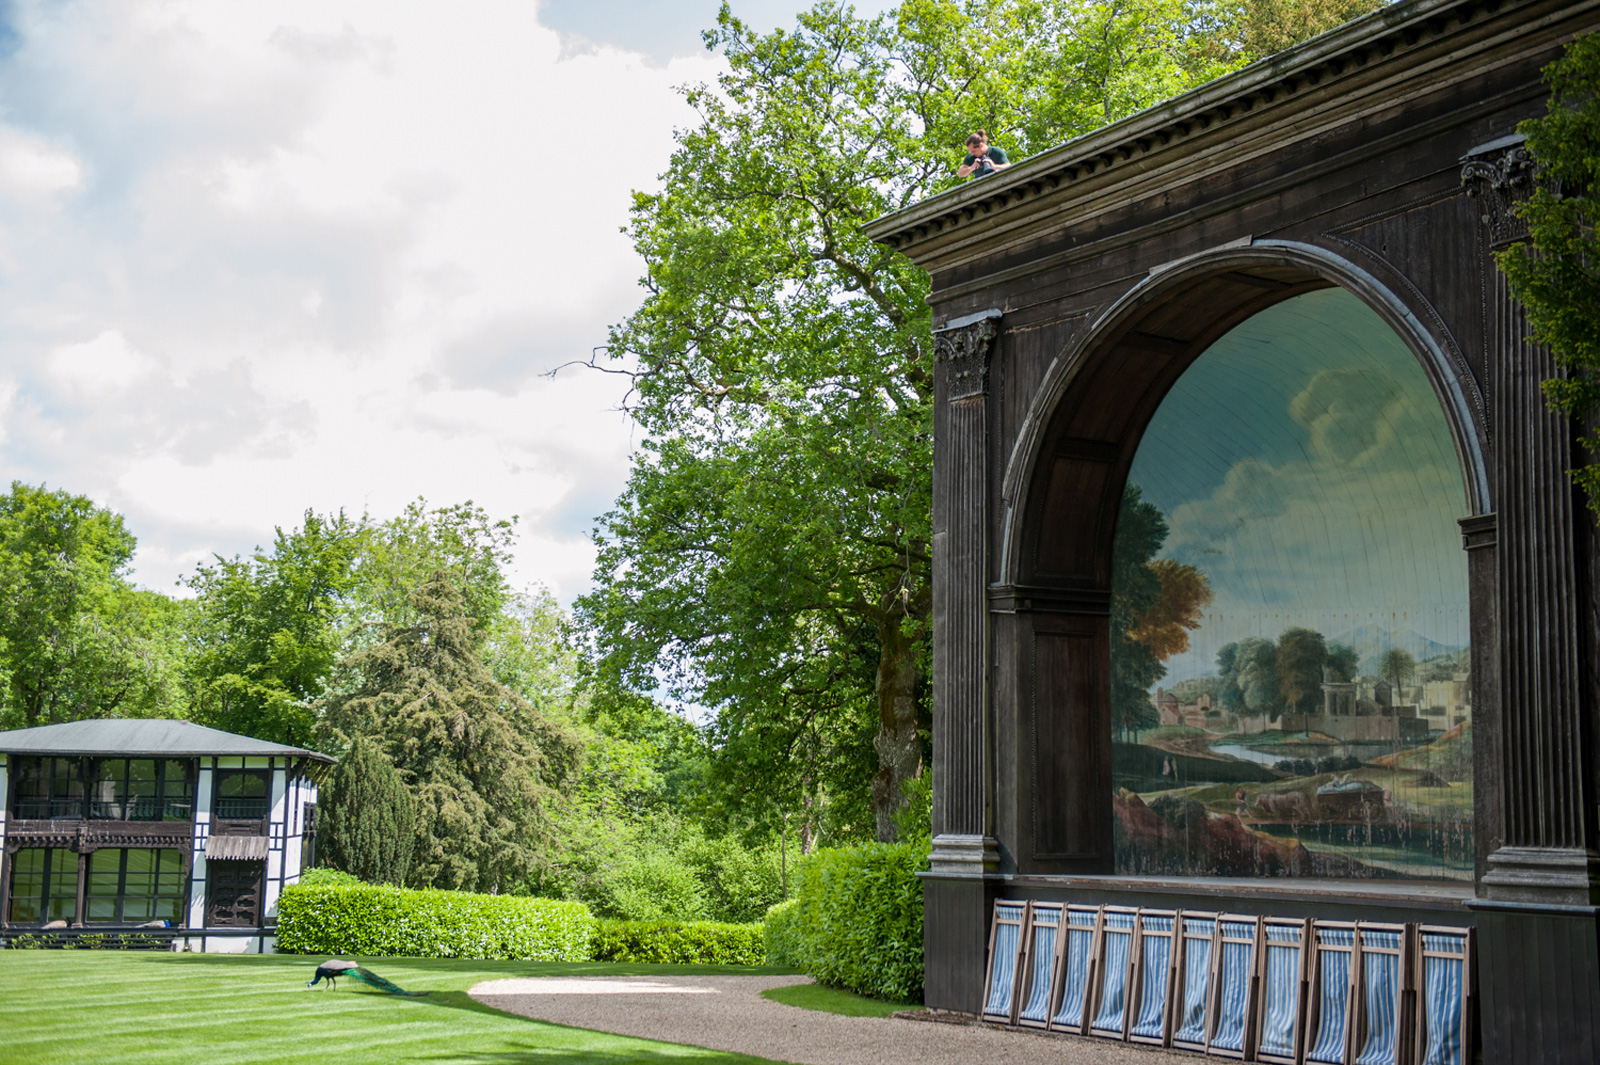 The Larmer Tree Gardens are dotted with 18th and 19th century follies